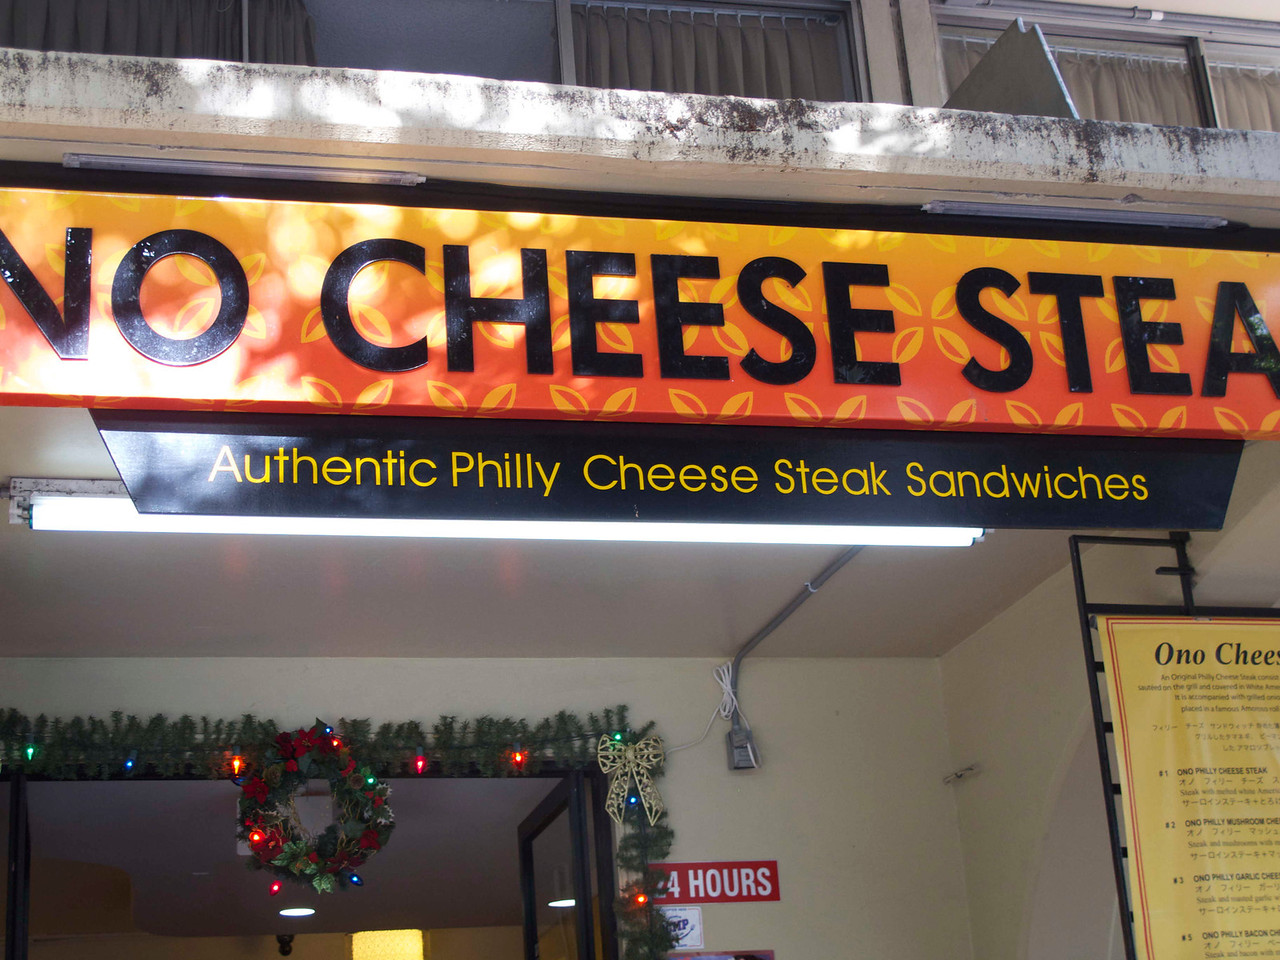 I have my doubts about any Philly Cheesesteak not made in Philly. I didn't ask to see if they used Amoroso's bread. No Amoroso's, no authenticity.